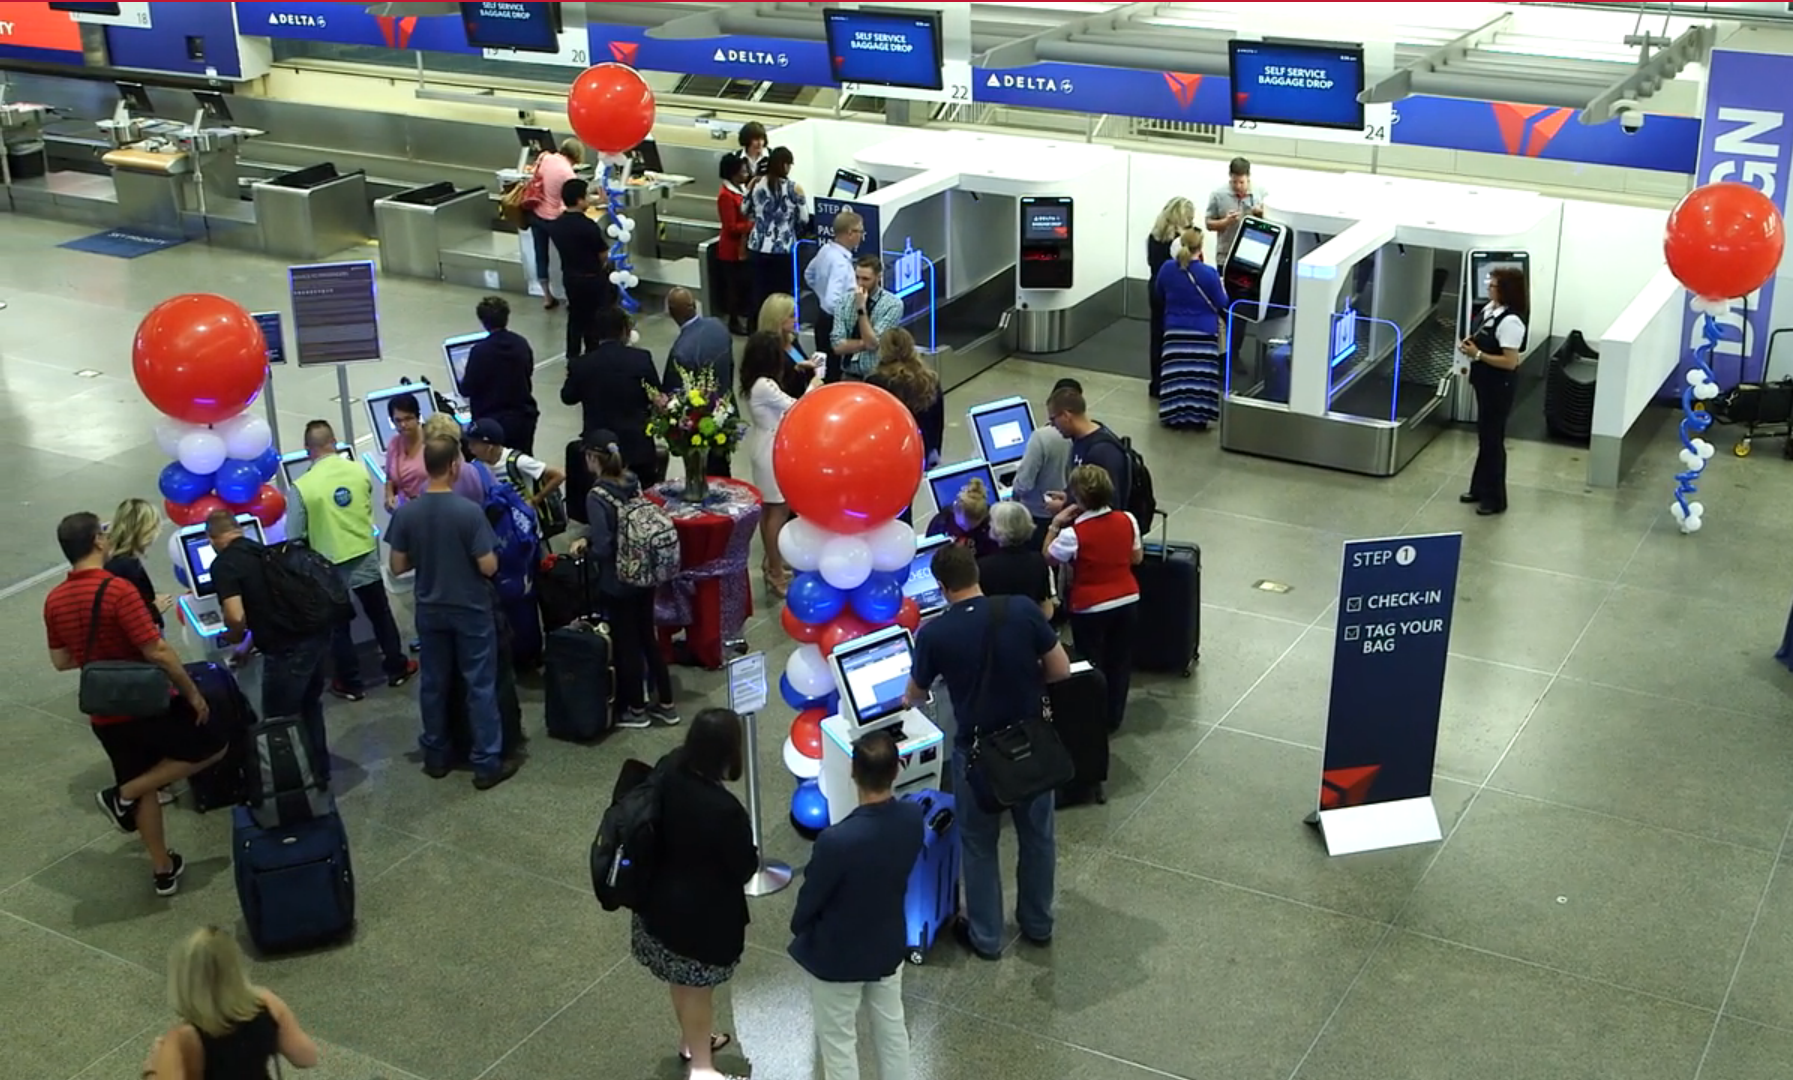 Delta Self Service Baggage Drop